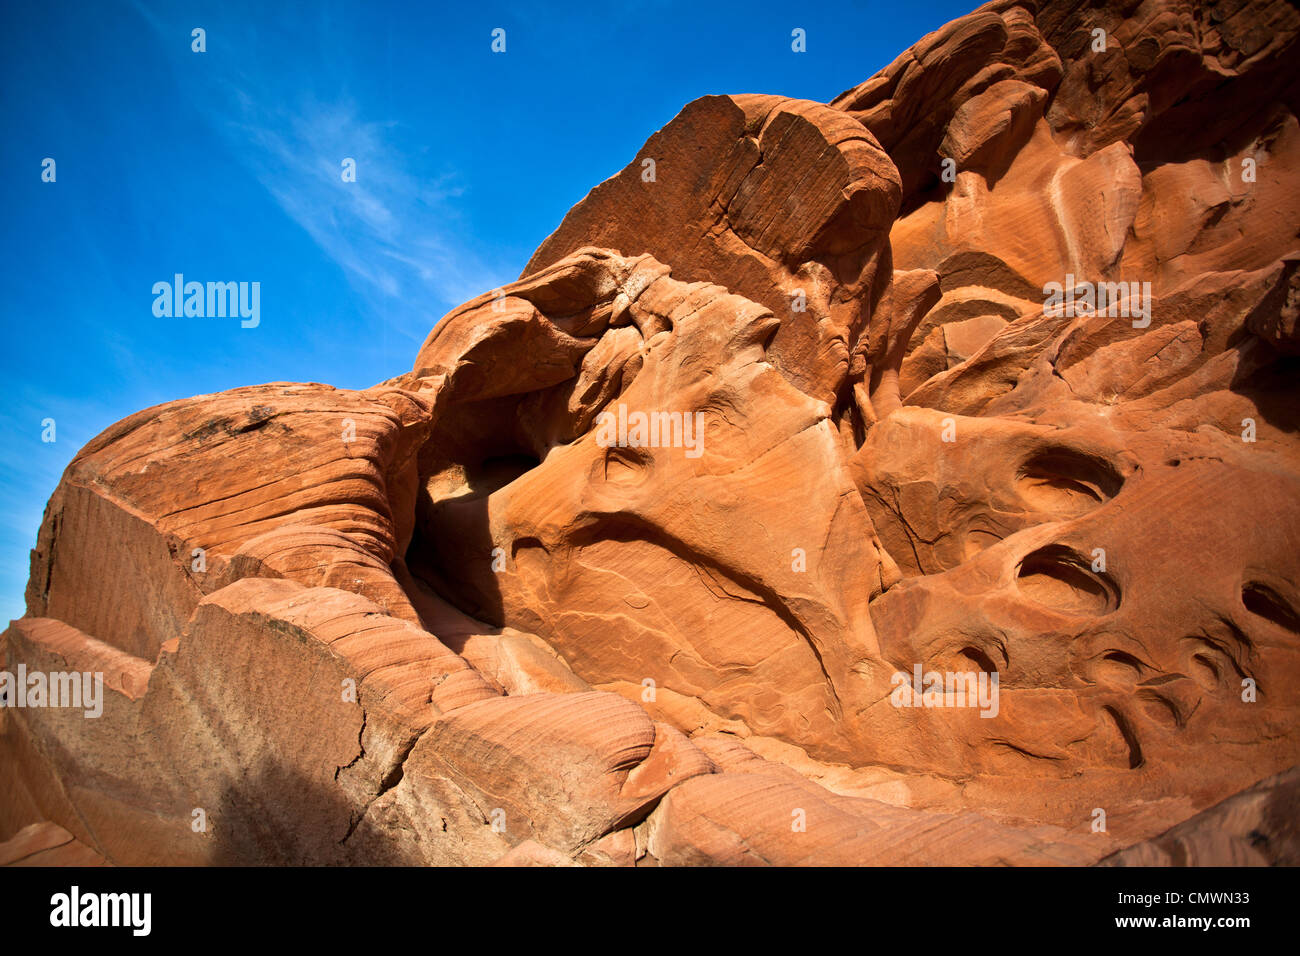 Sandstone rock formations in Nevada's Valley of Fire State Park - Stock Image